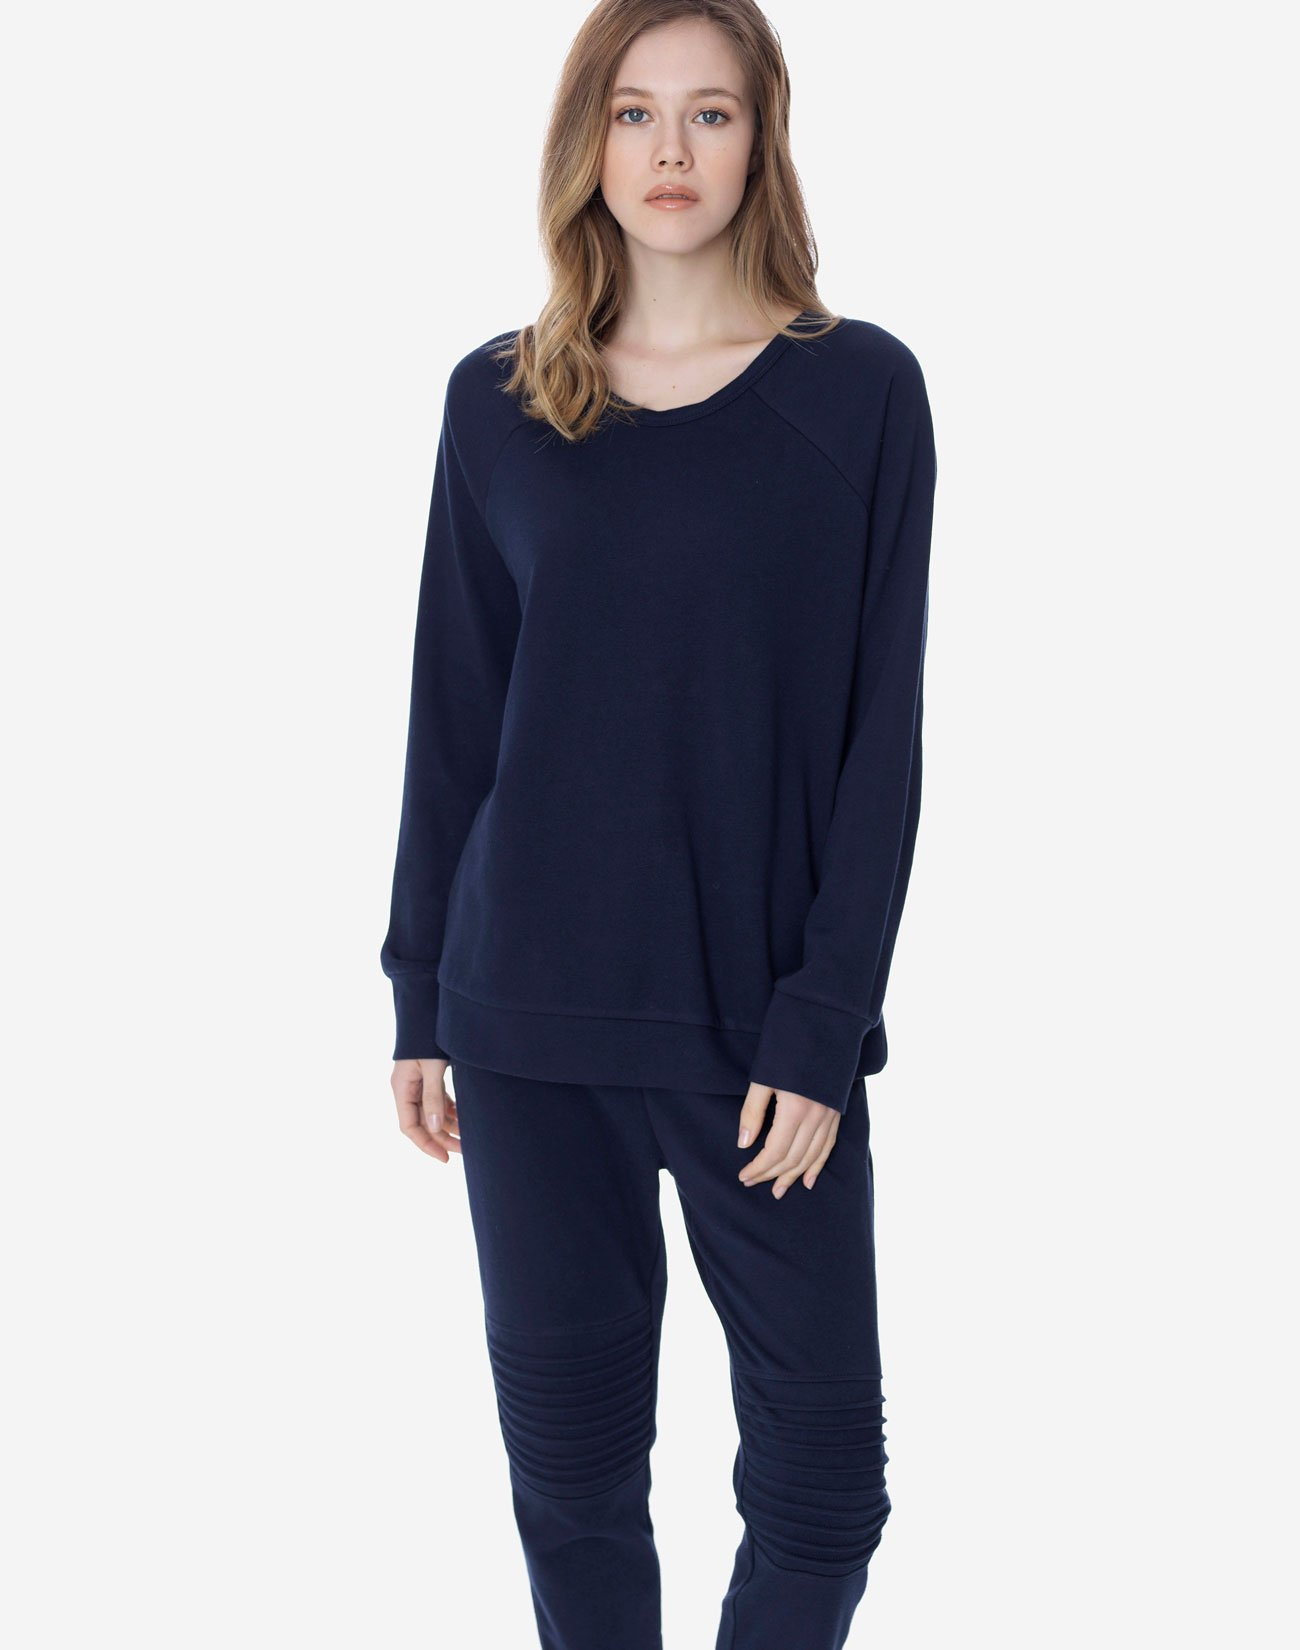 Sweatshirt with snap buttons